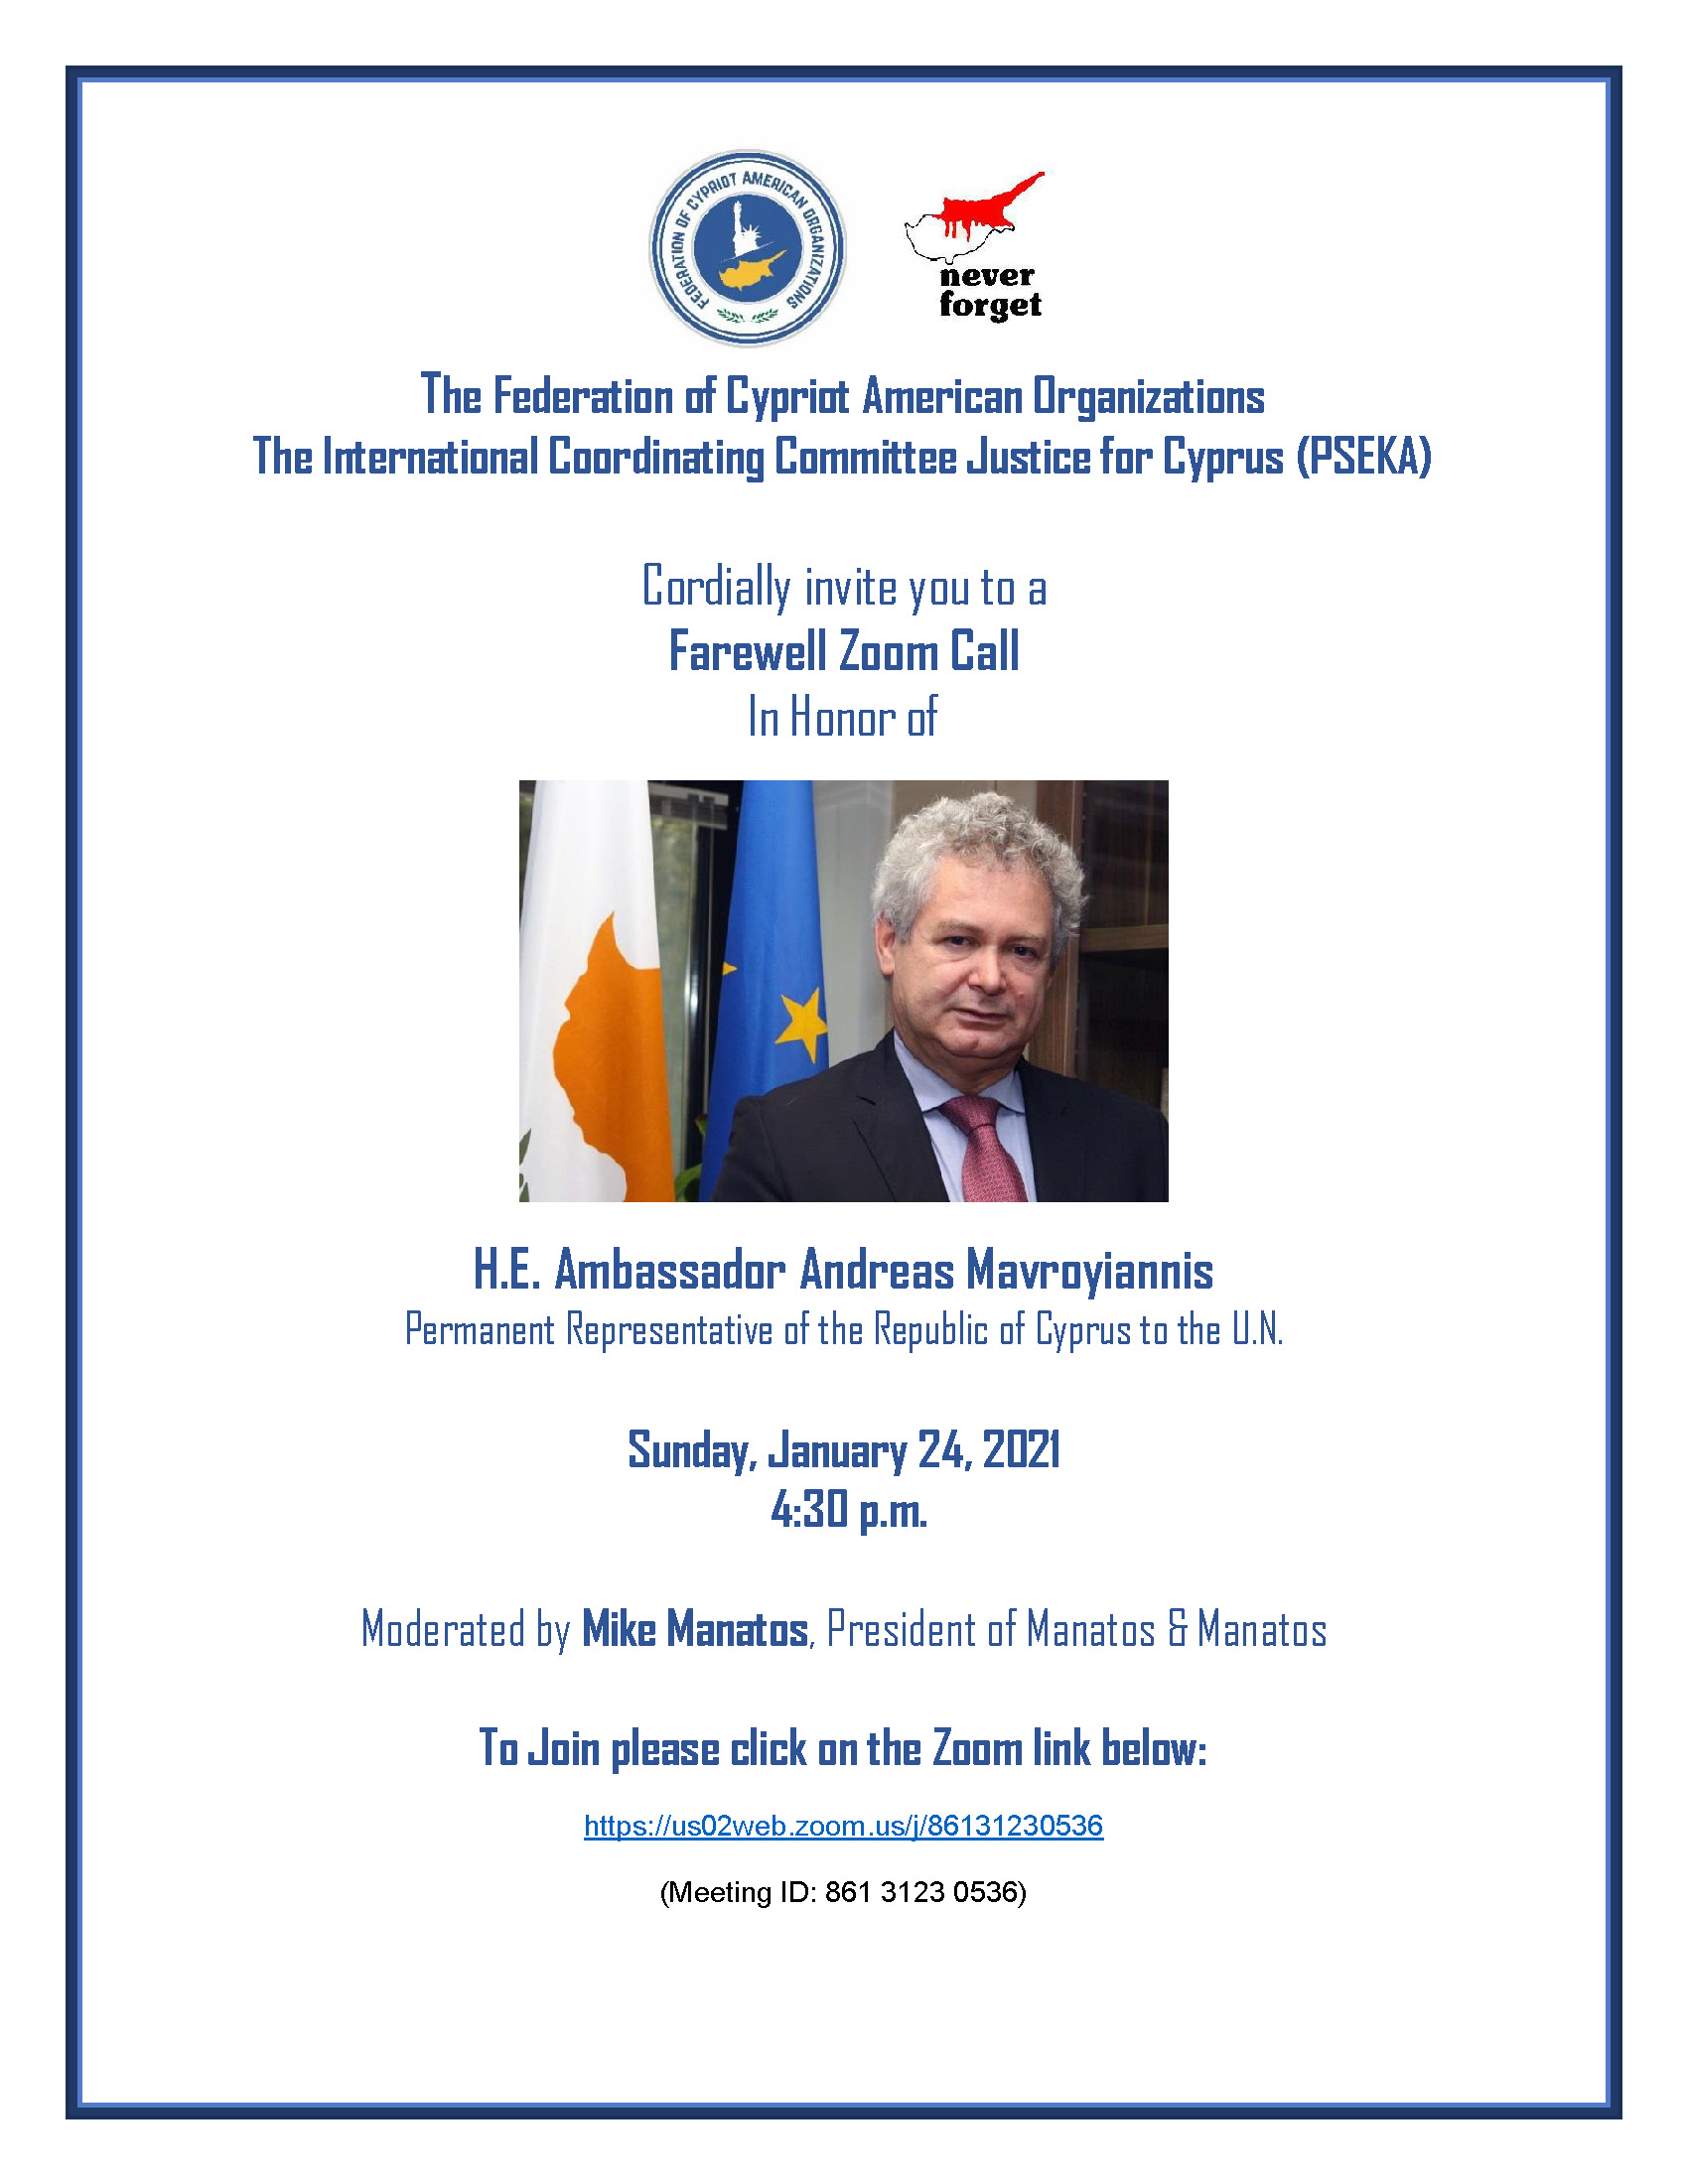 Farewell Zoom Call for H.E. Ambassador Andreas Mavroyiannis – Sunday, January 24, 2021 at 4:30 p.m.